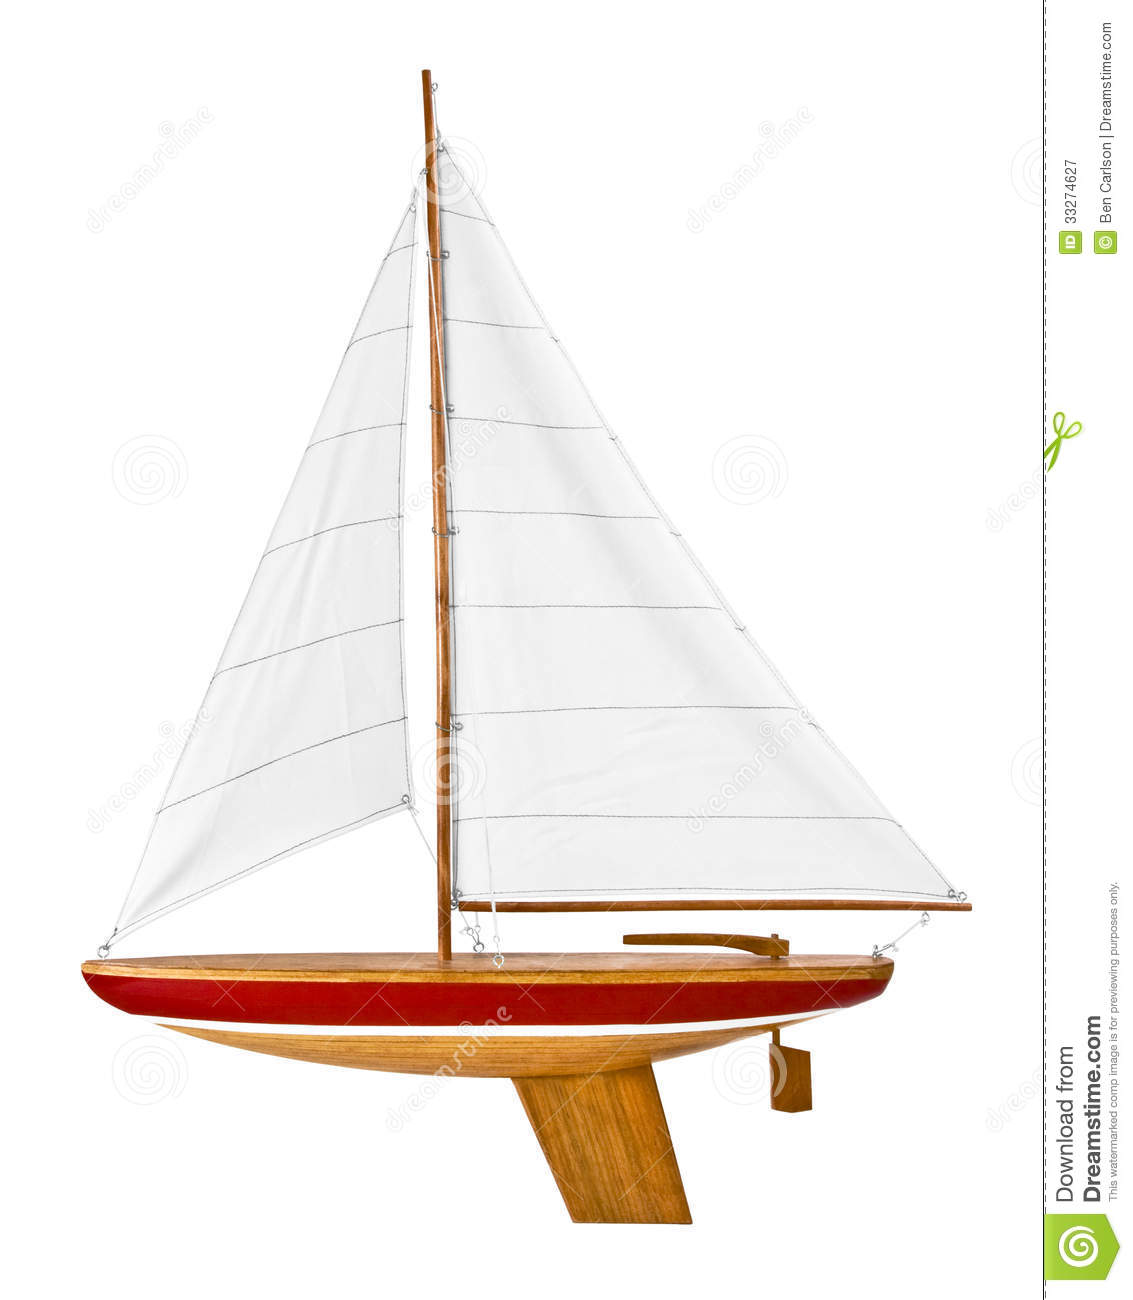 sailboat toy stock image. image of childhood, sailboat